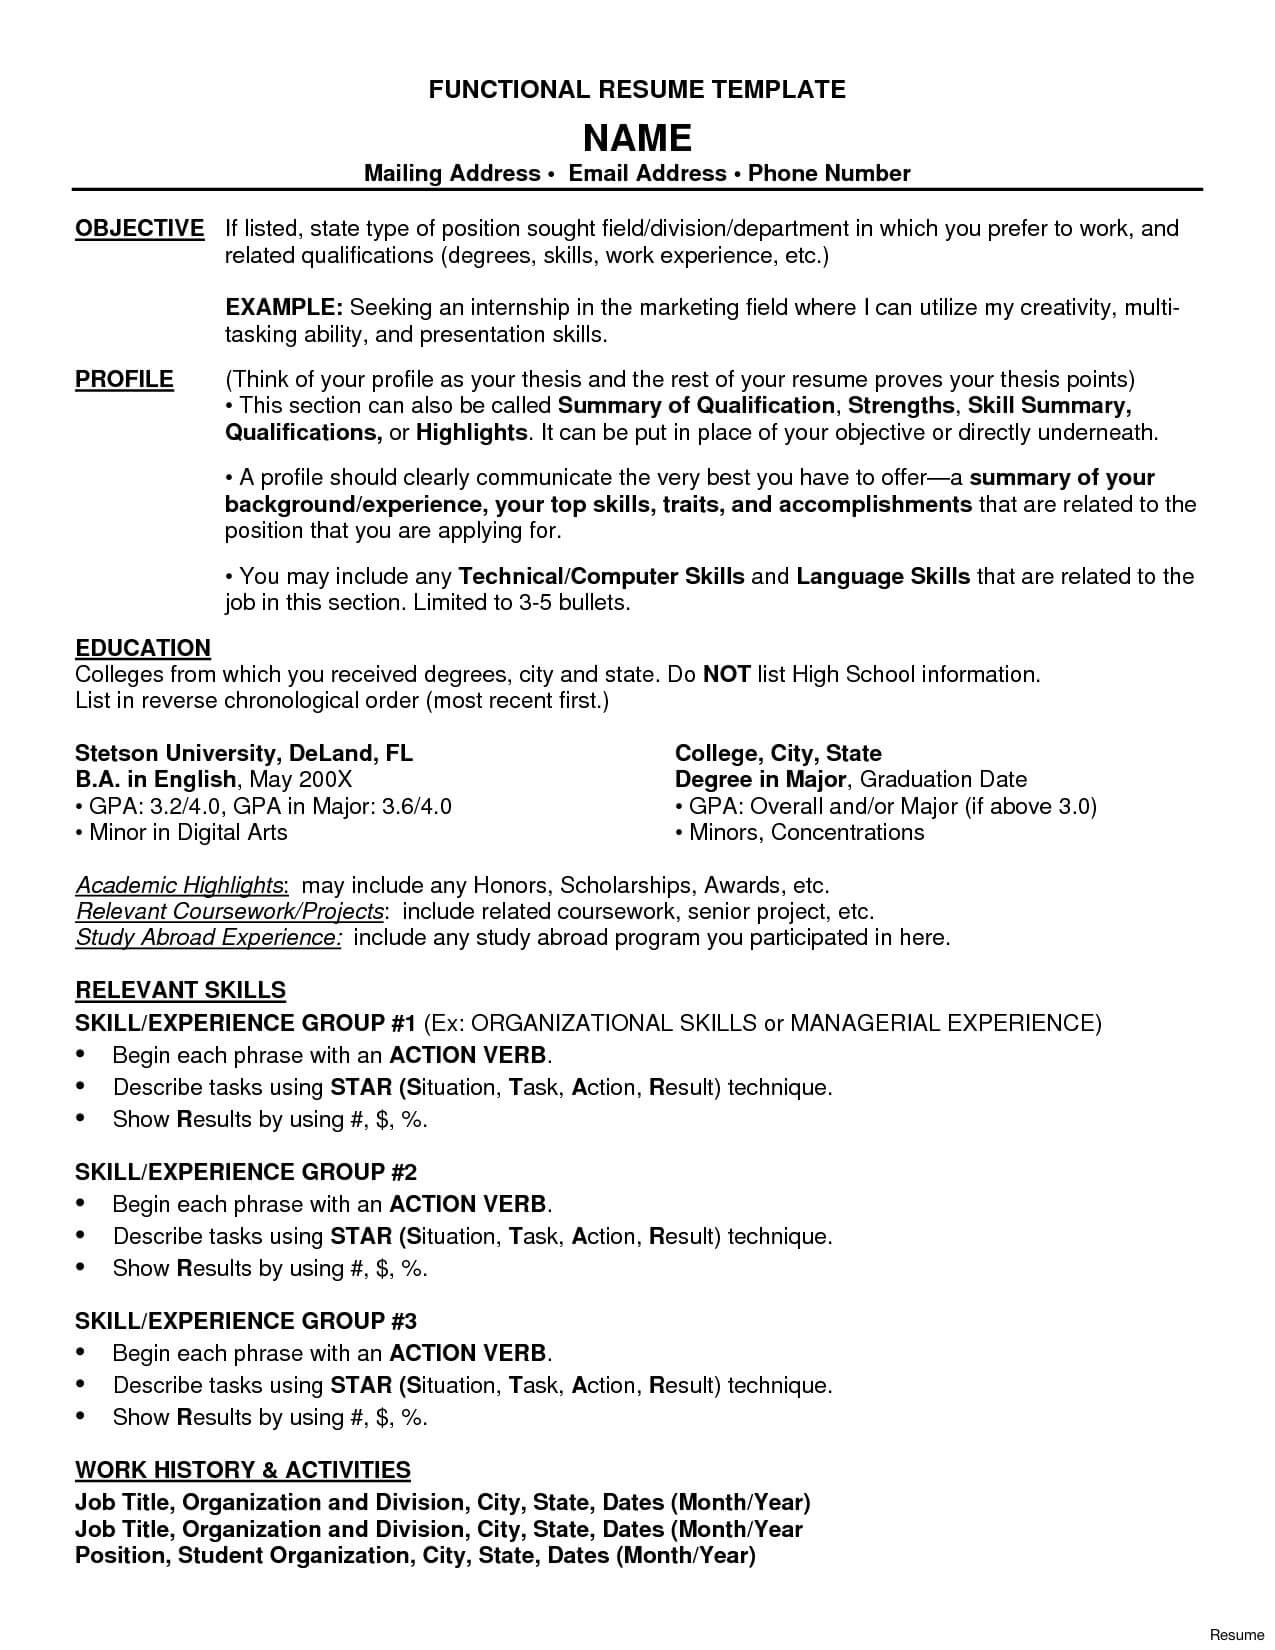 Journal Template Word Functional Resume Sample Free Copy For Academic Journal Template Word